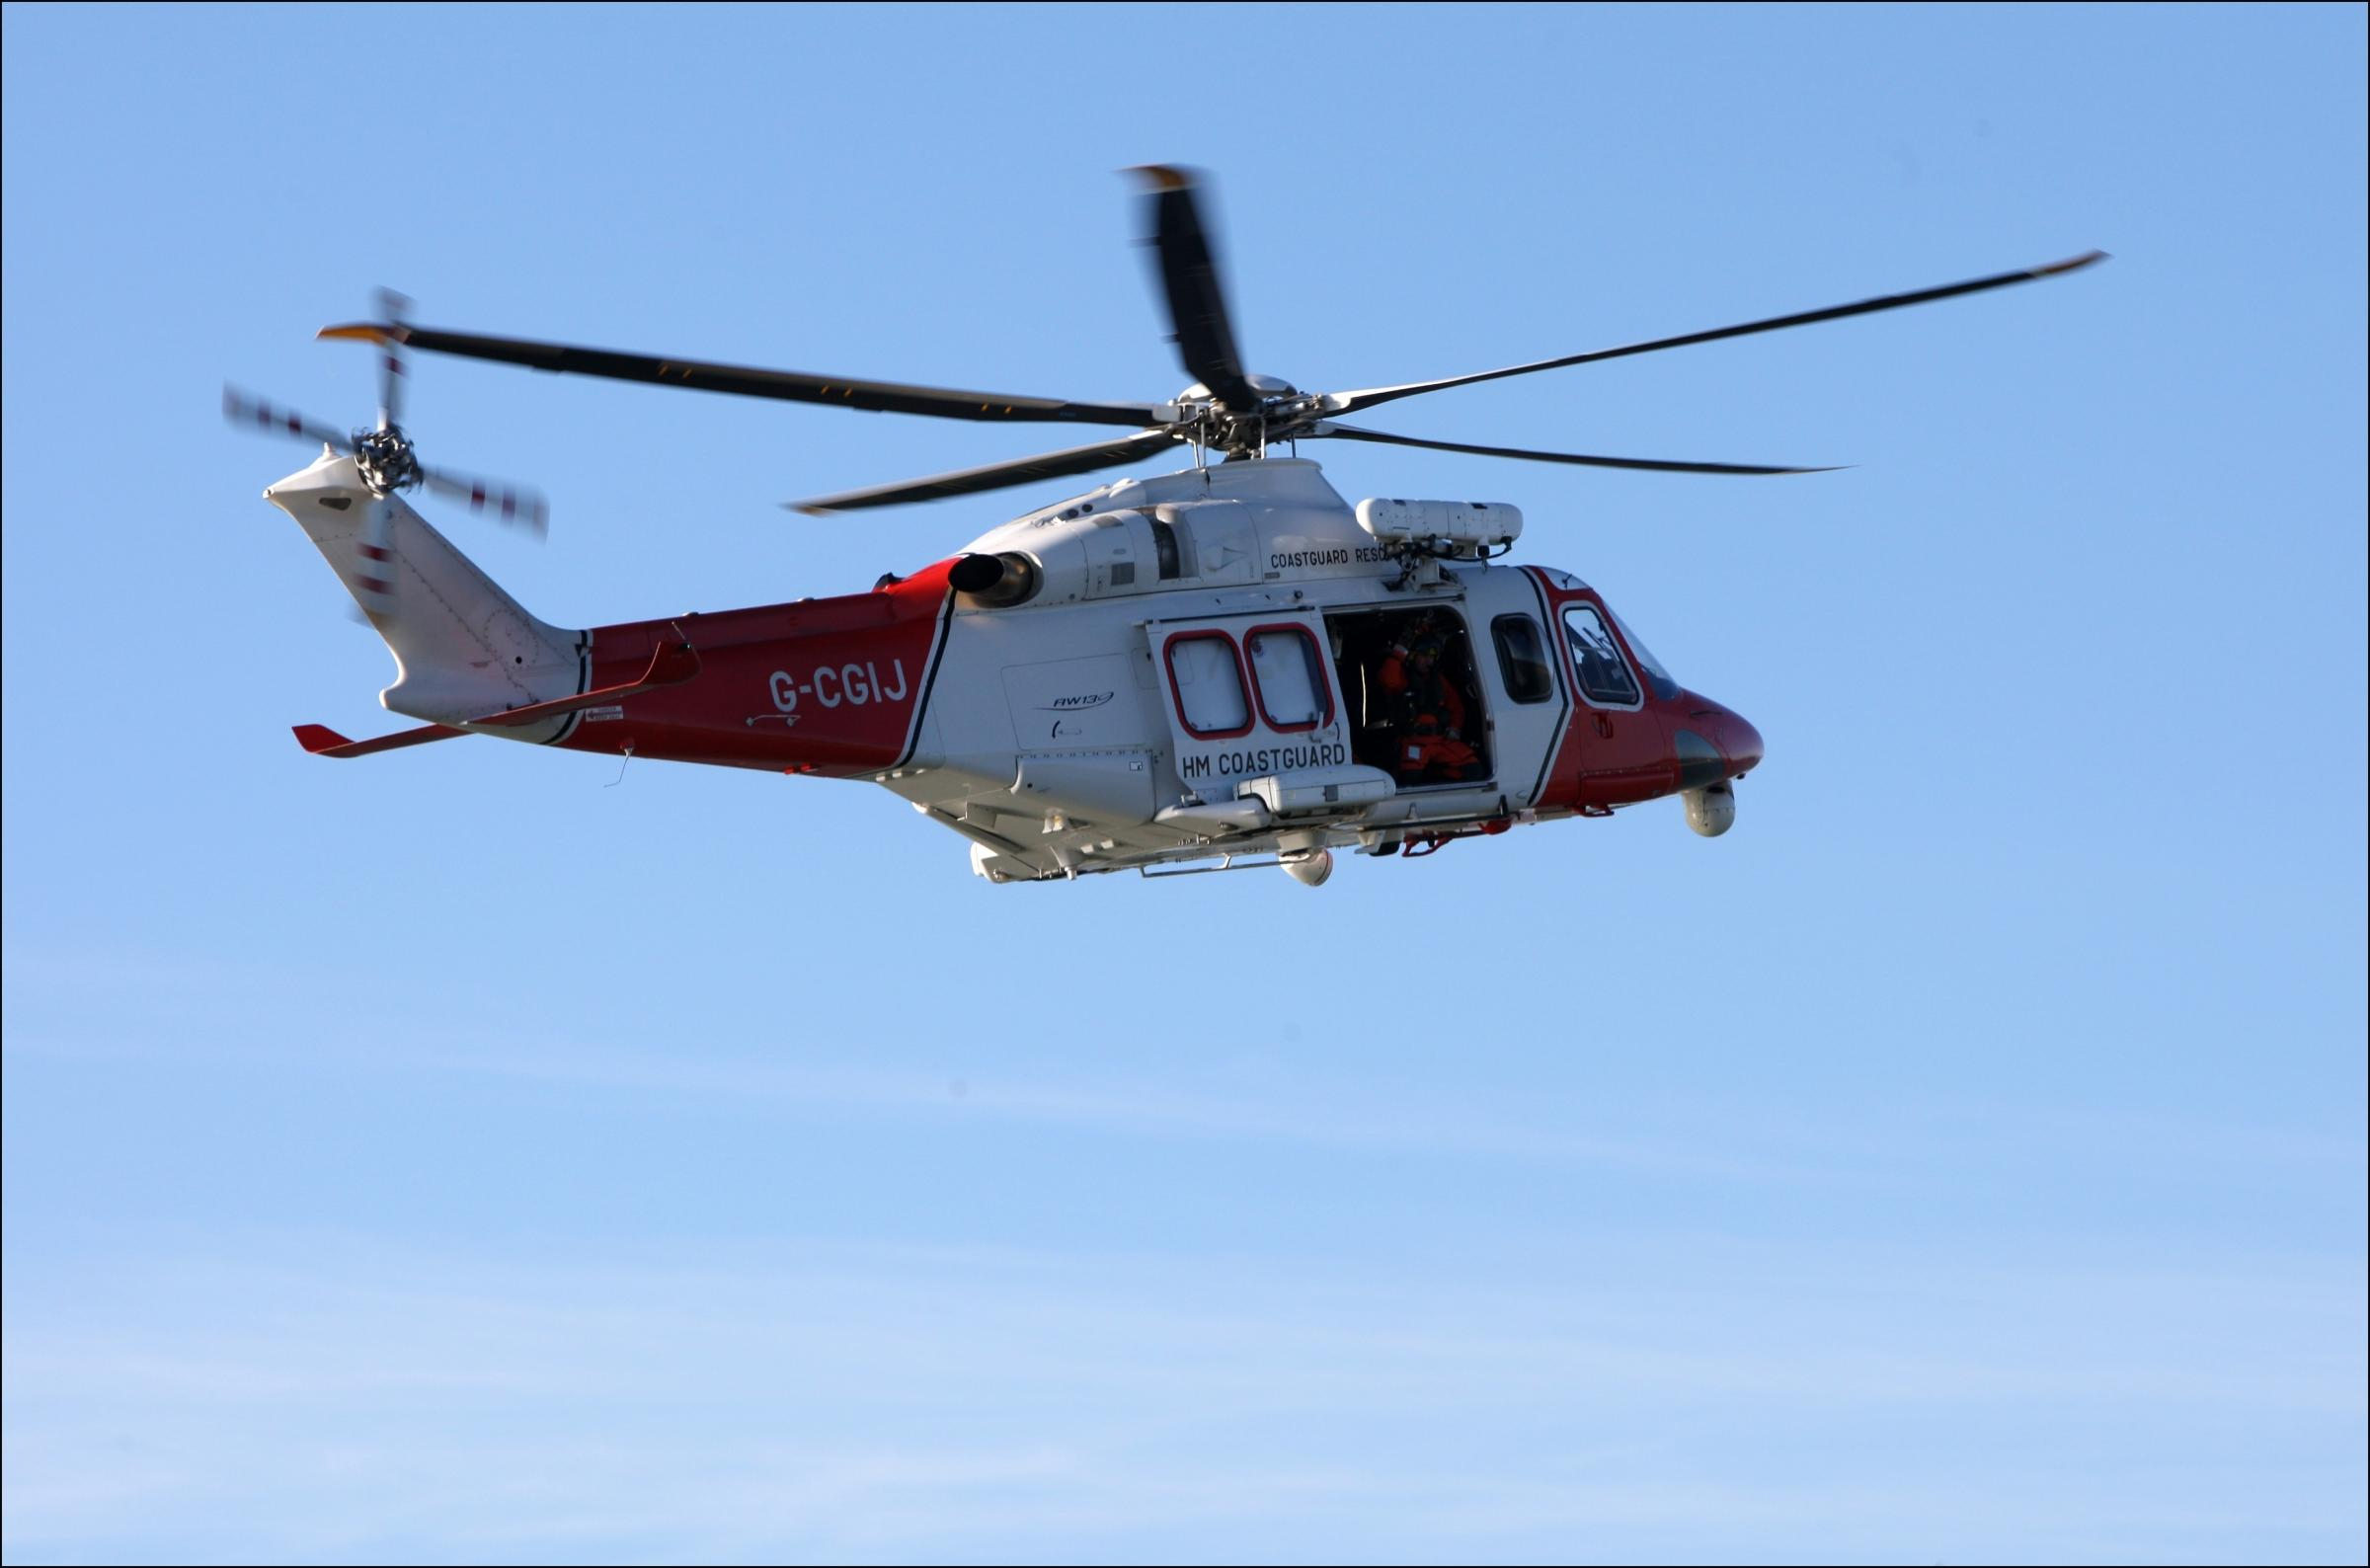 HM Coastguard helicopter off the coast at Lee on Solent. January 1st 2013..